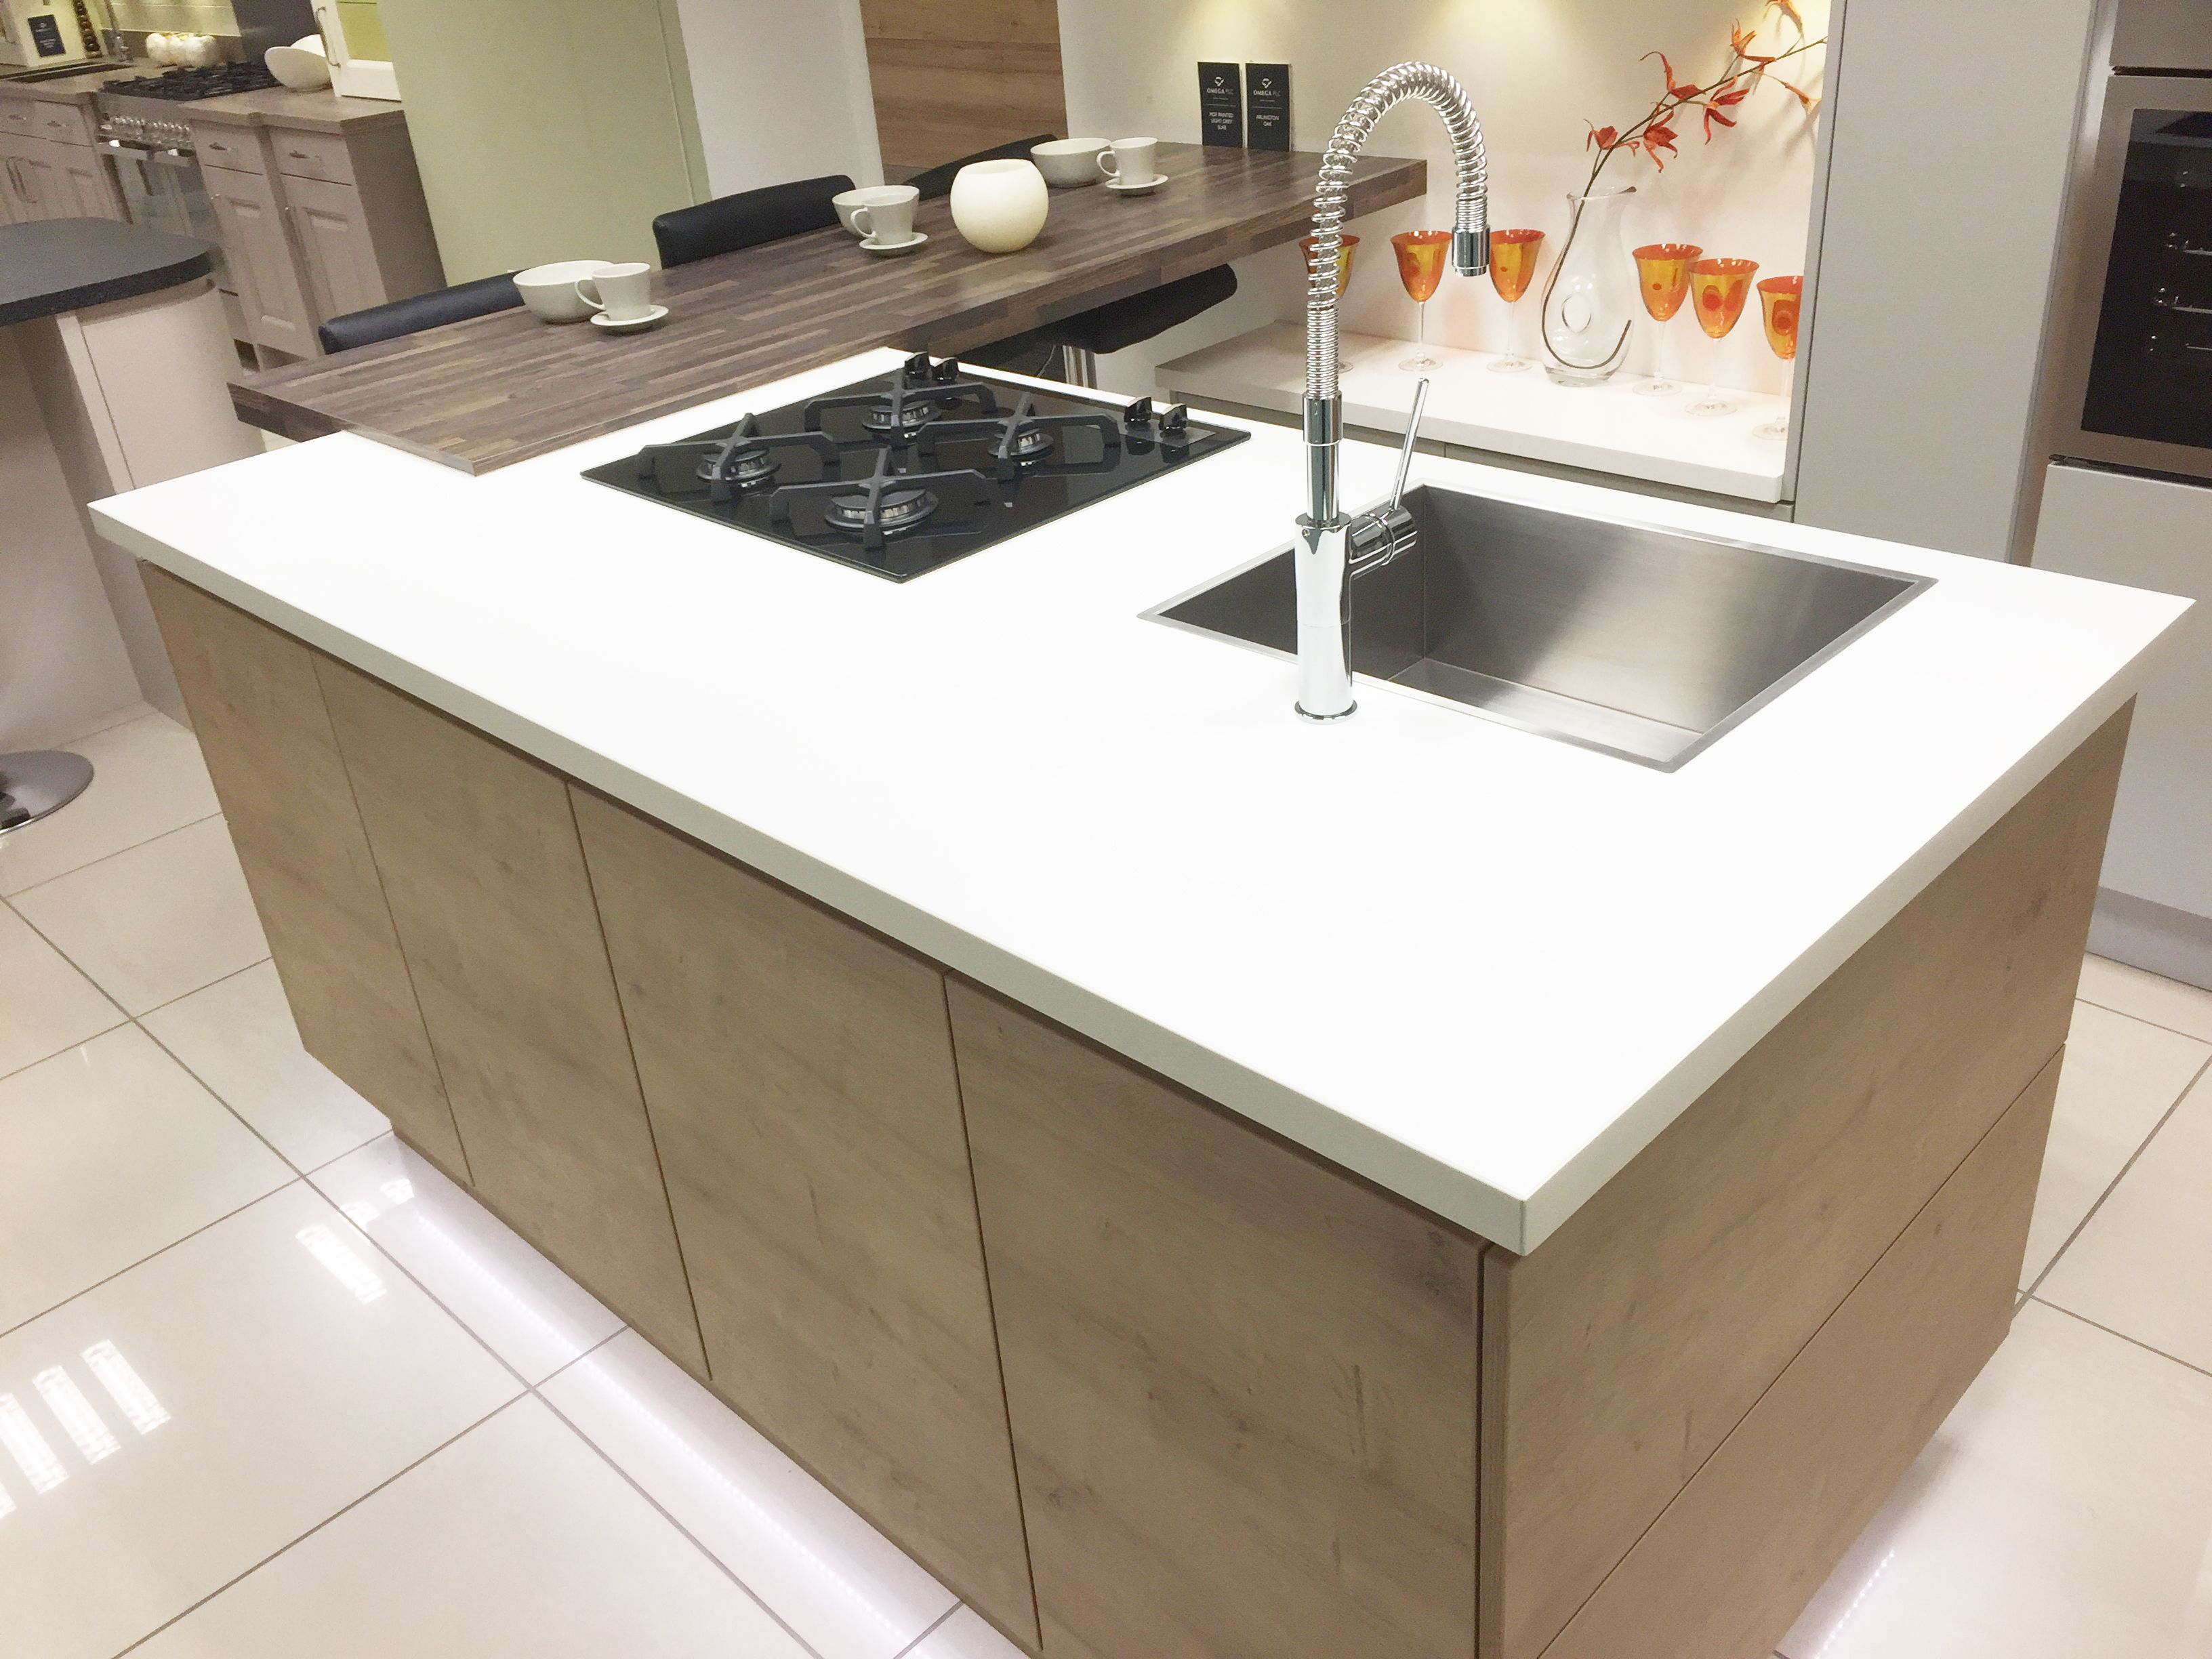 Kitchen Island With Sink And Bar modern kitchen island with hob, sink and breakfast bar area. www